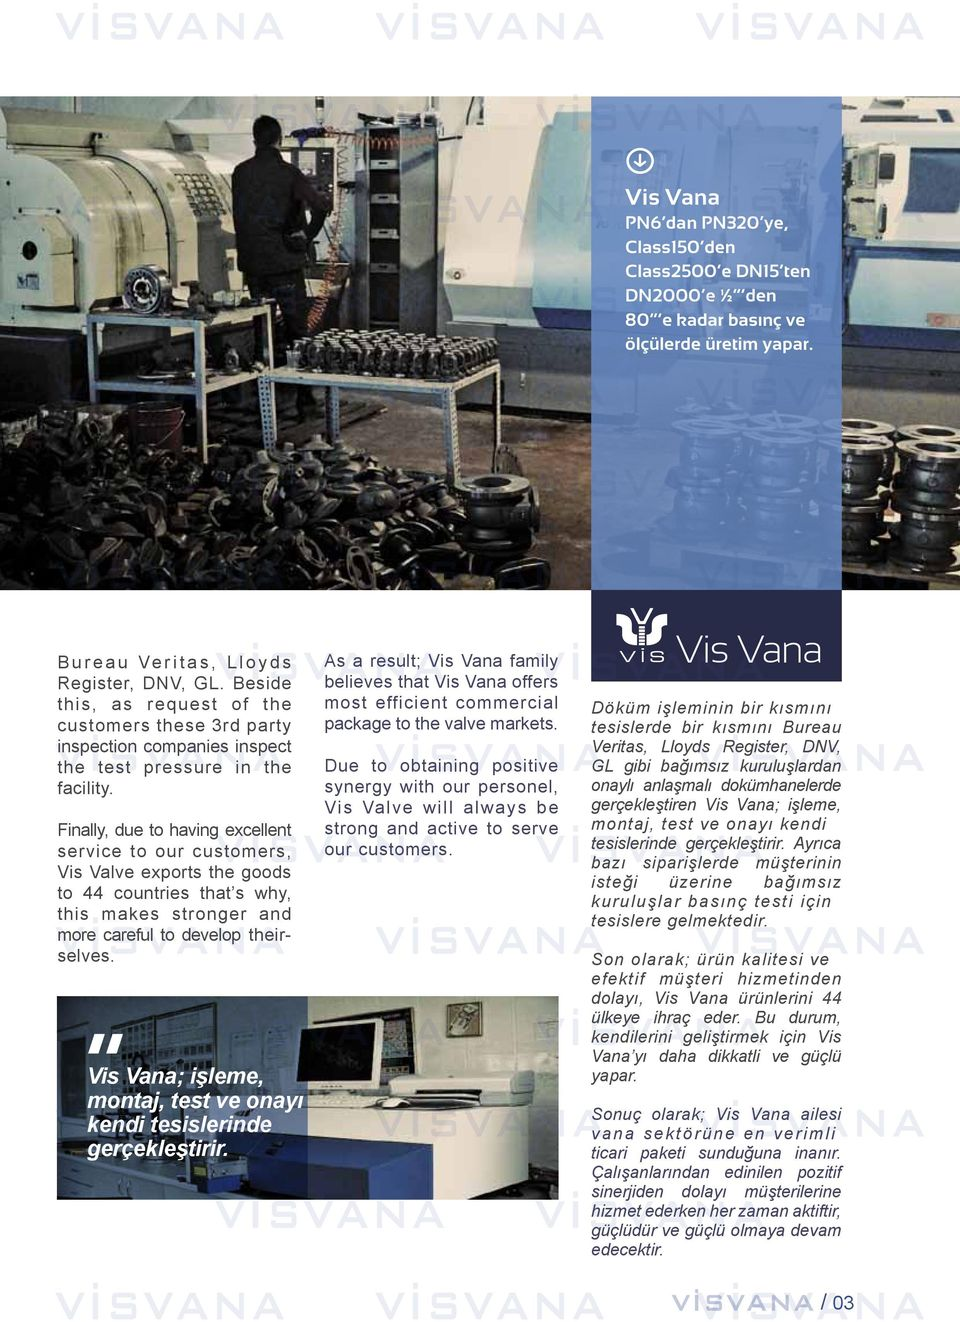 Finally, due to having excellent service to our customers, Vis Valve exports the goods to countries that s why, this makes stronger and more careful to develop theirselves.